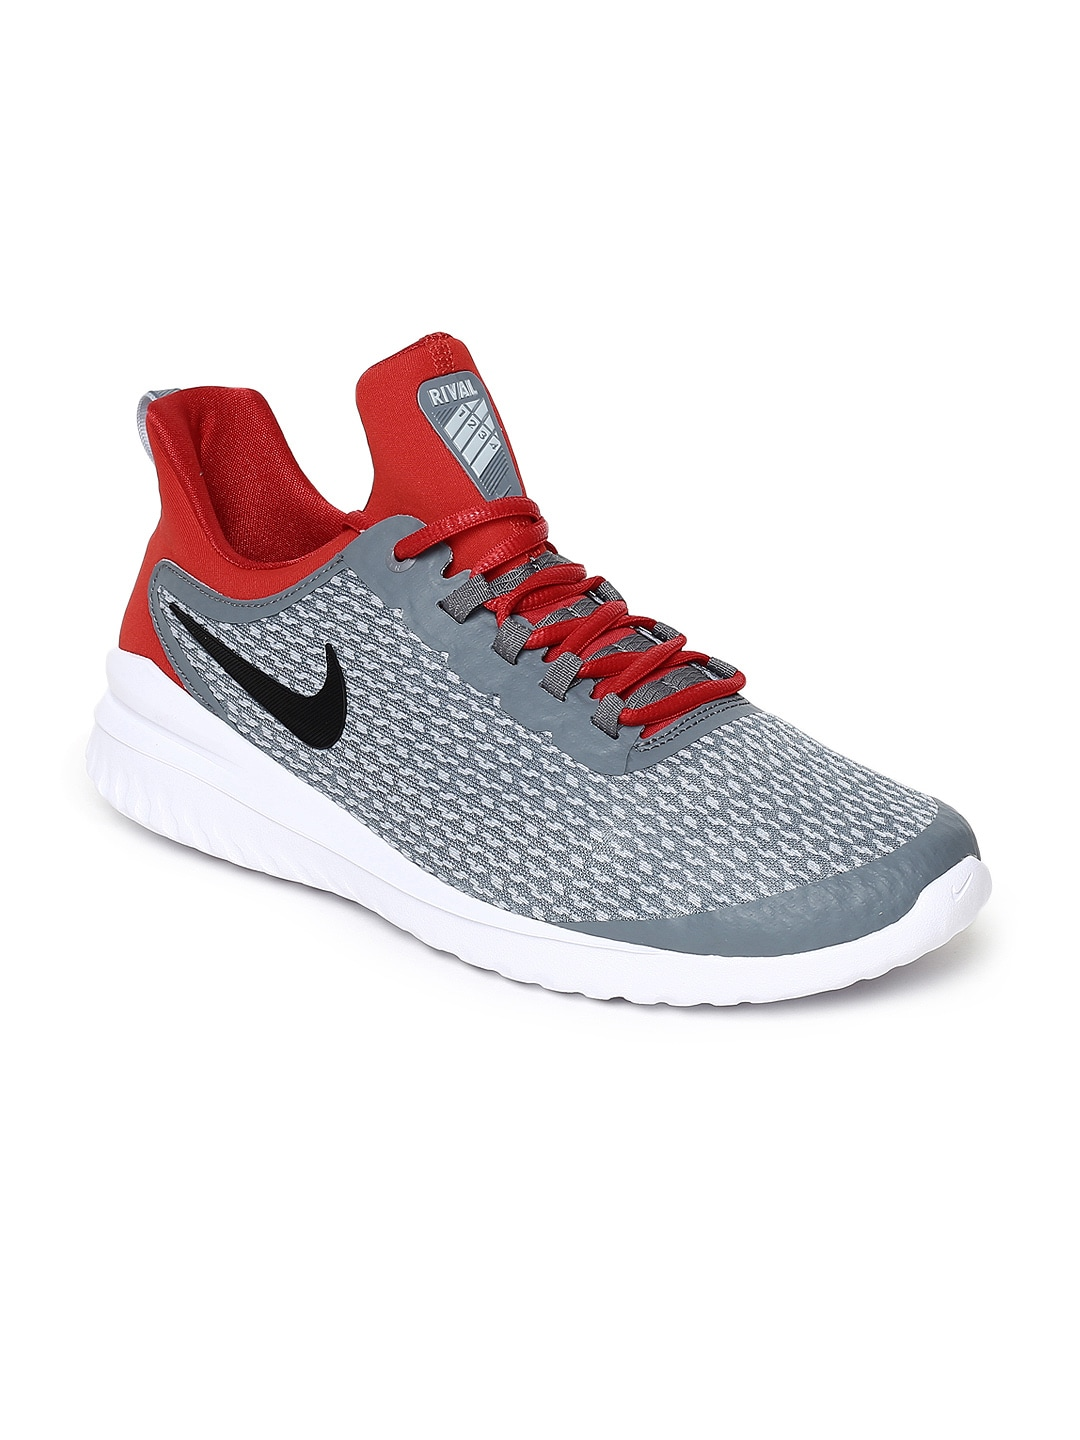 quality design 55457 78032 Nike Sport Shoe - Buy Nike Sport Shoes At Best Price Online   Myntra